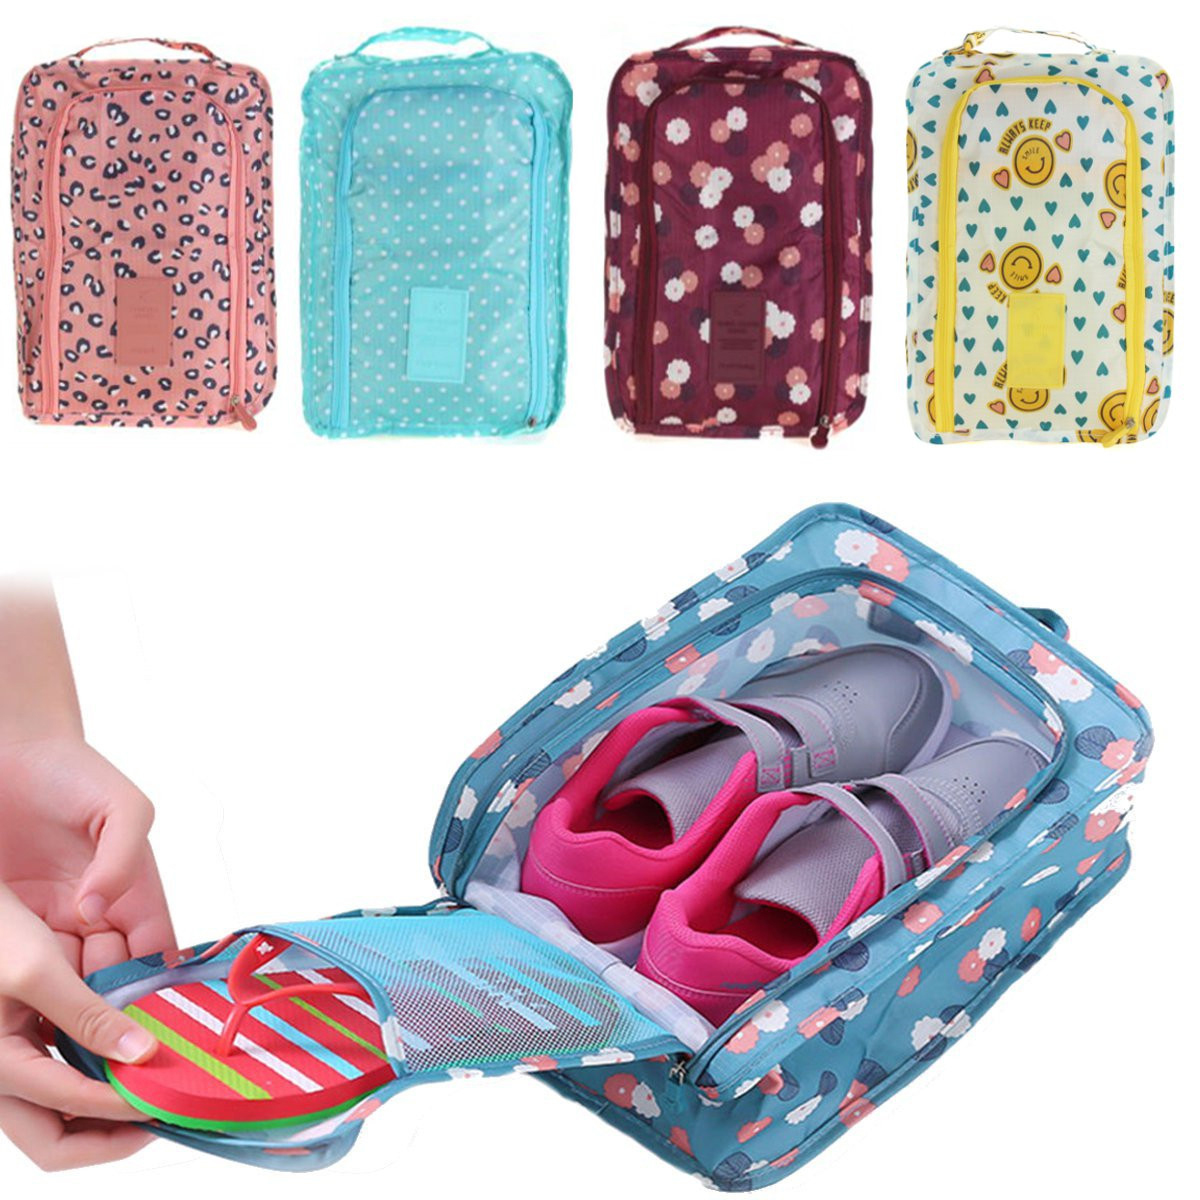 Waterproof Travel Tote Shoes Storage Bag Cloths Zip Case Cover Organizer